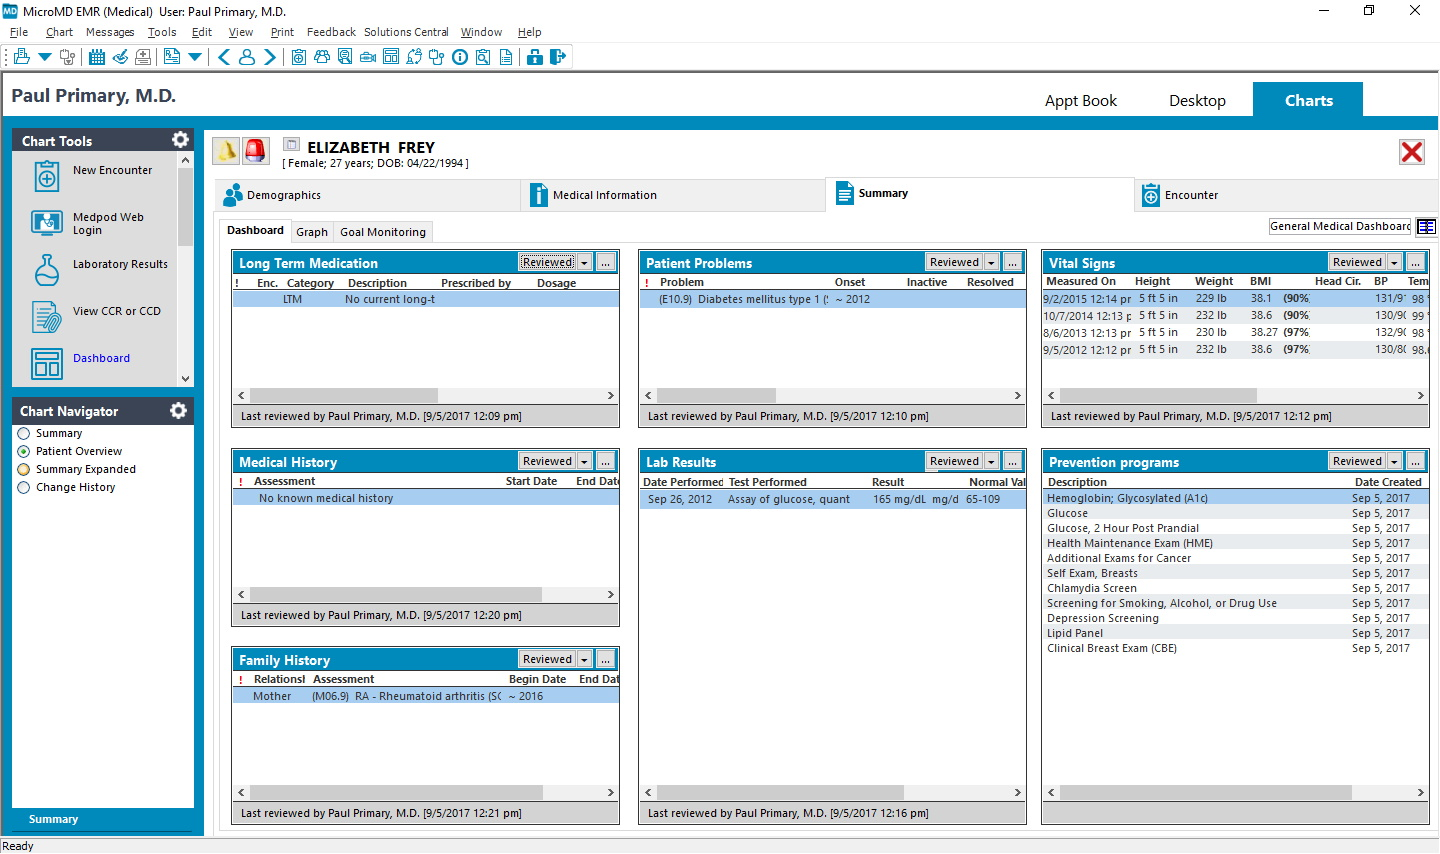 Clinical Dashboards allow each provider to review the entire patient chart in a single view customized to the most important information they want to see at a glance. Each user can customize their own dashboard.